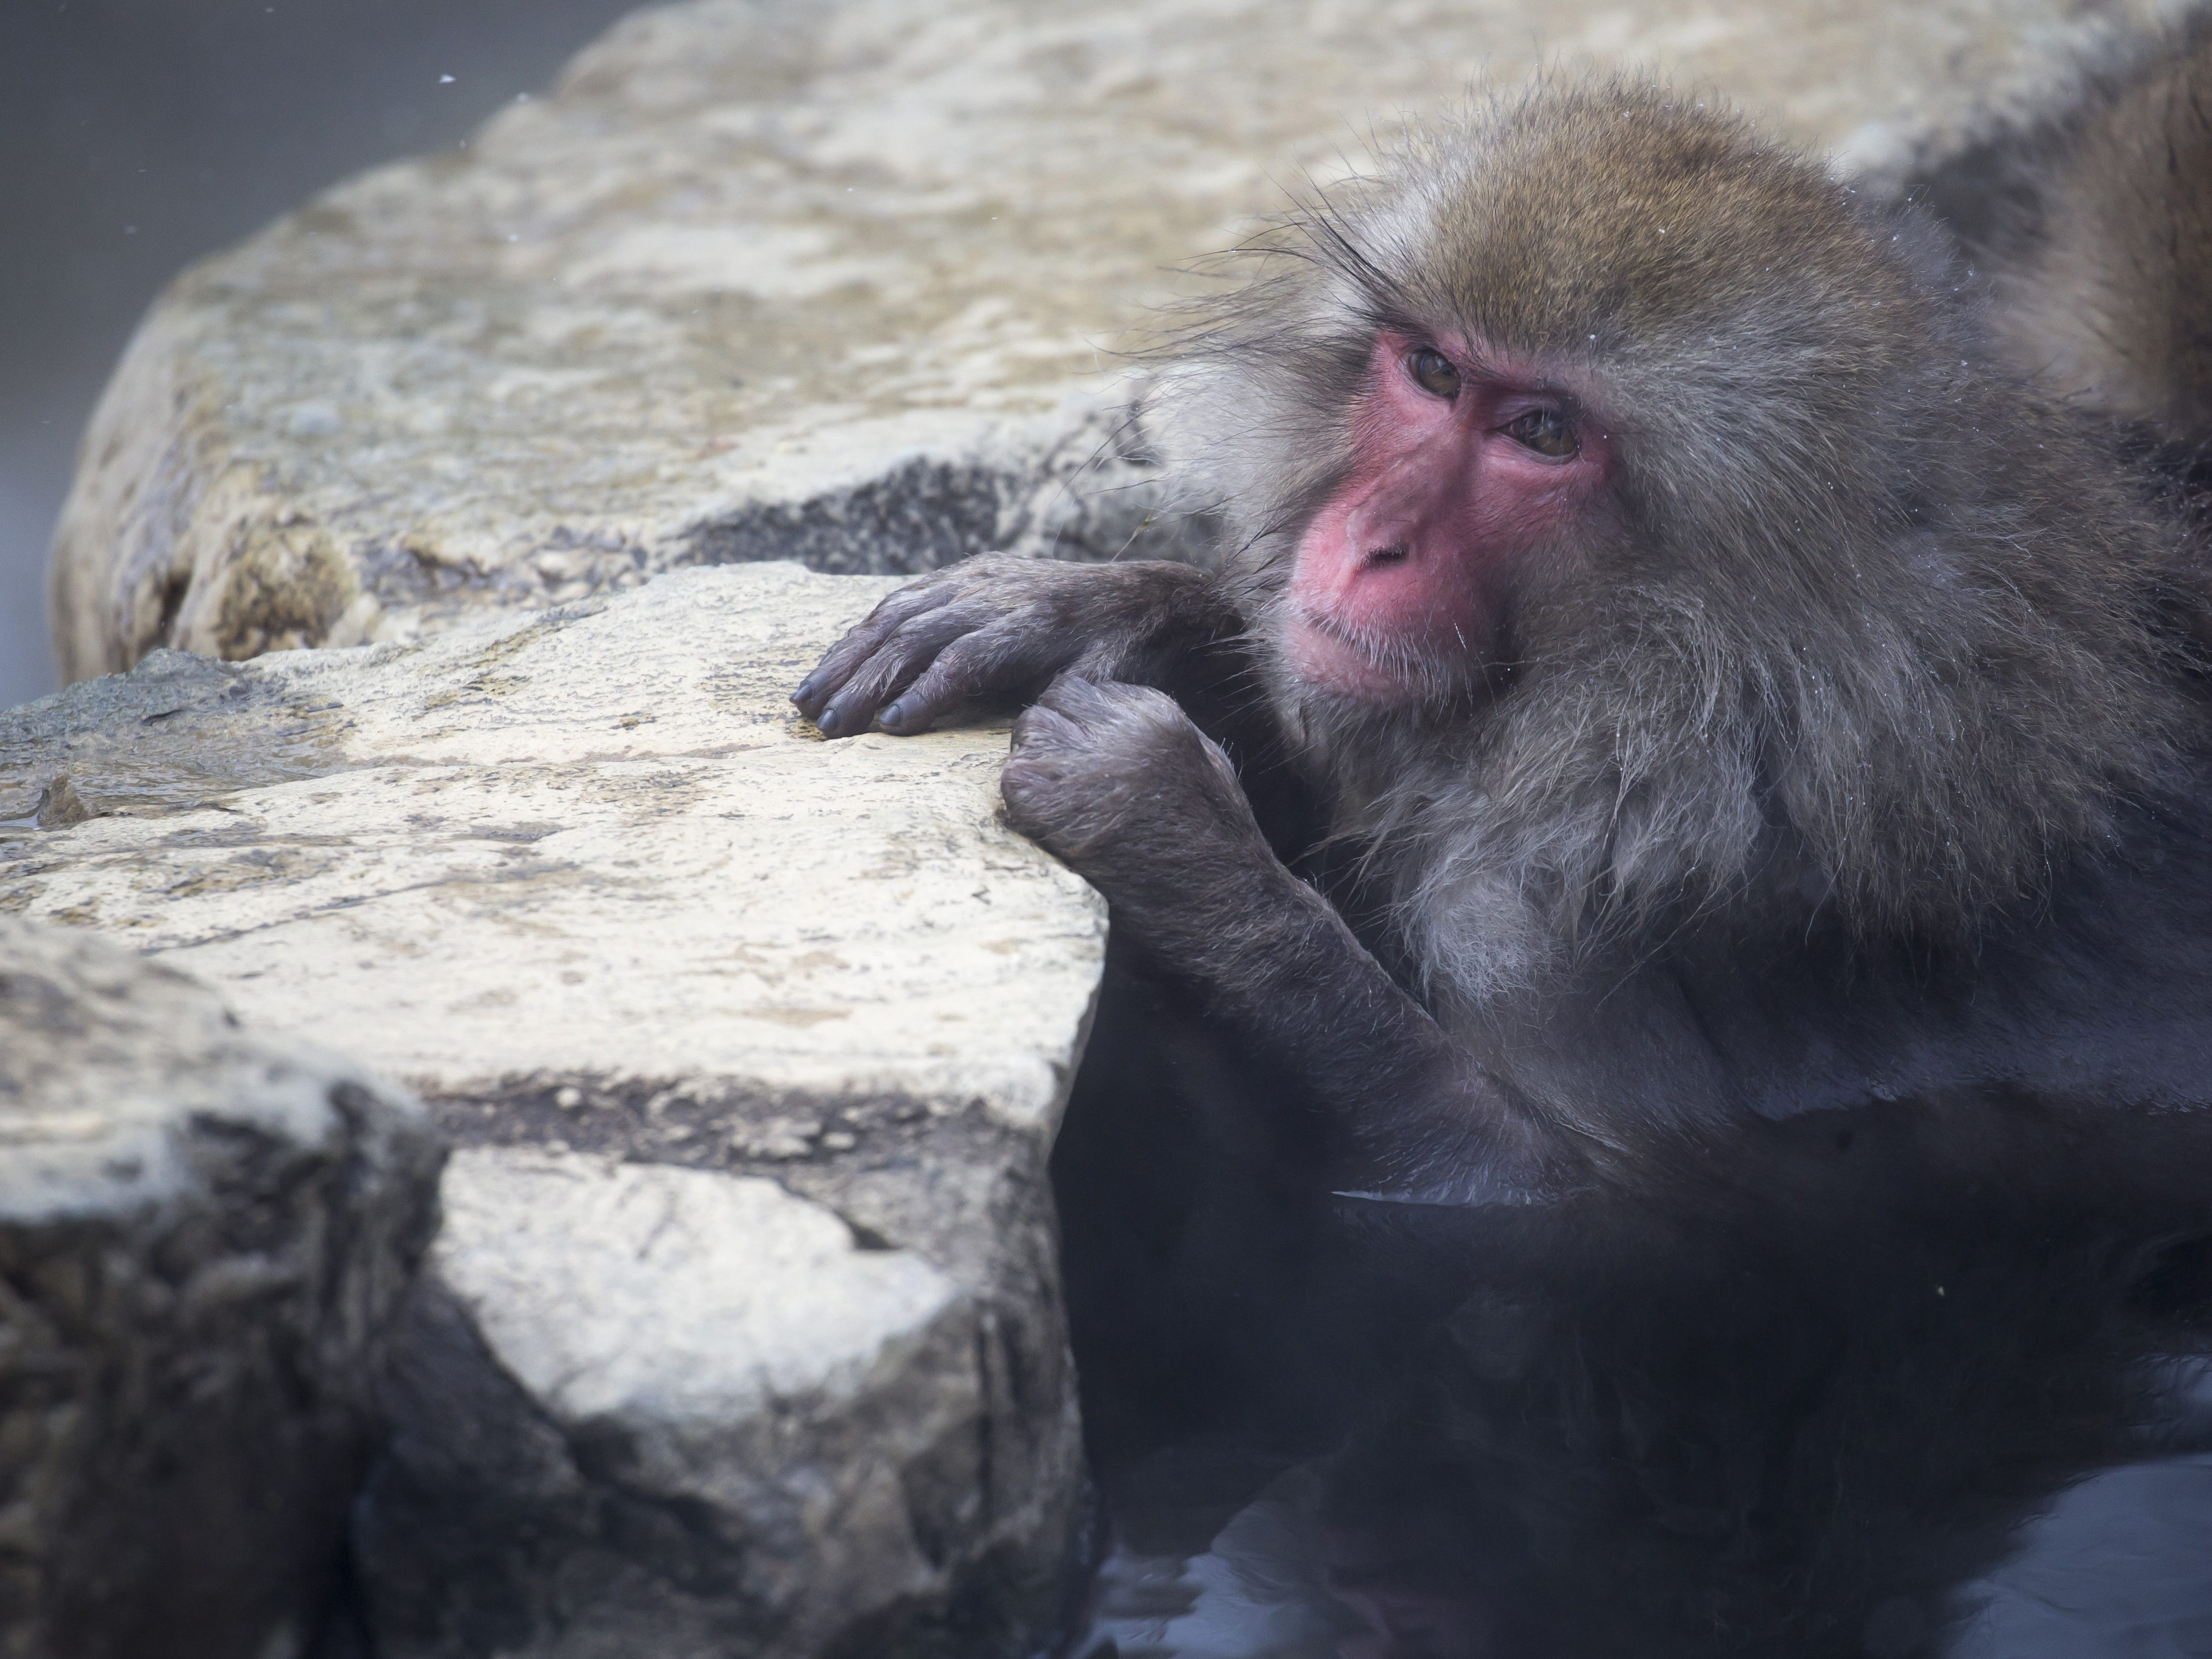 YAMANOUCHI, JAPAN - FEBRUARY 08: A Macaque monkey bathes in a hot spring at the Jigokudani Yaen-koen wild Macaque monkey park on February 8, 2019 in Yamanouchi, Japan. The wild Japanese macaques are known as snow monkeys, according to the park's official website. (Photo by Tomohiro Ohsumi/Getty Images) ORG XMIT: 775292339 ORIG FILE ID: 1128214374